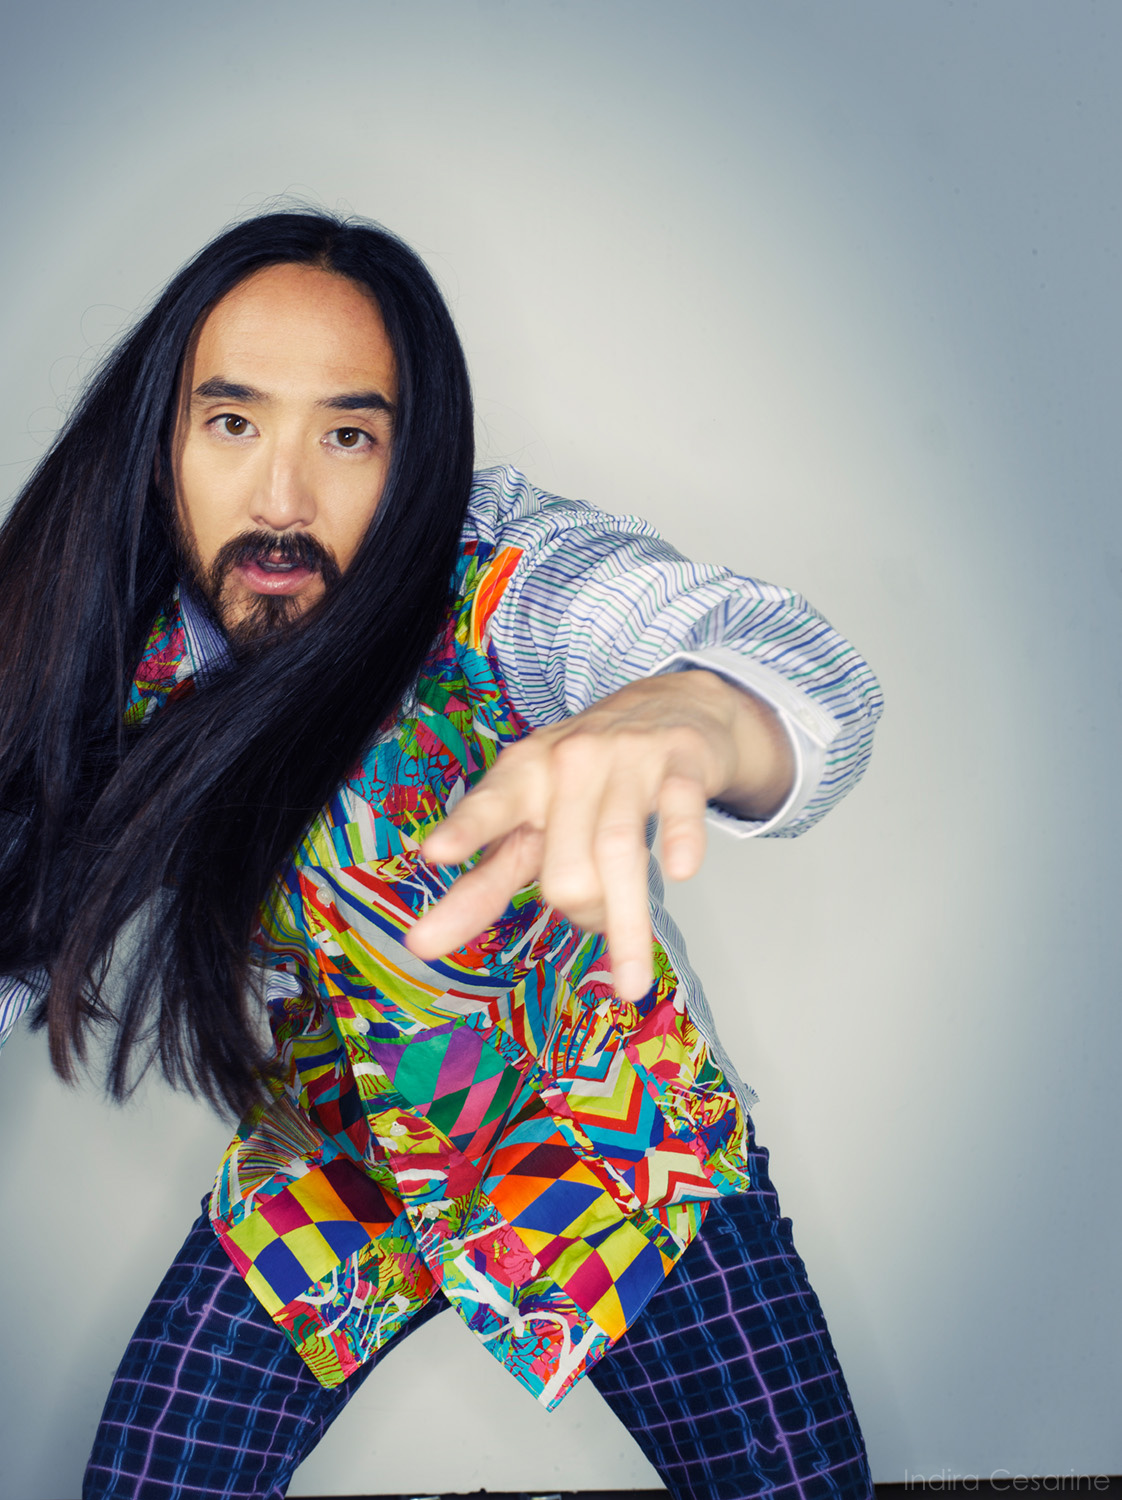 Steve-Aoki-The-Untitled-Magazine-Photography-by-Indira-Cesarine-012.jpg